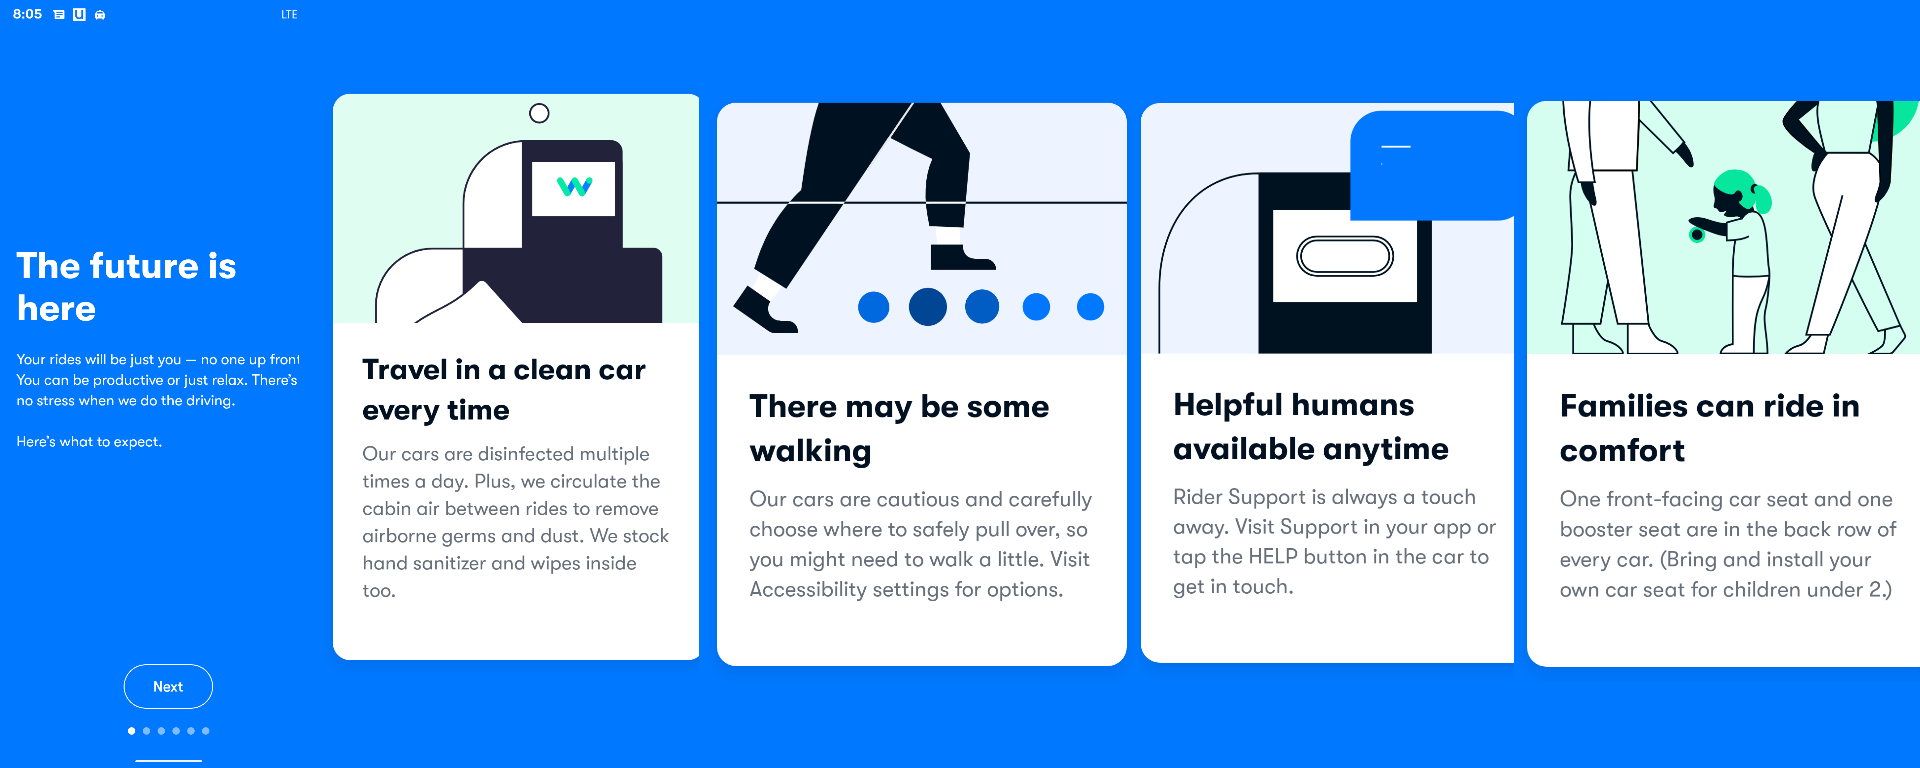 Waymo app screenshot, containing information about what to expect in a fully autonomous driverless Waymo One vehicle